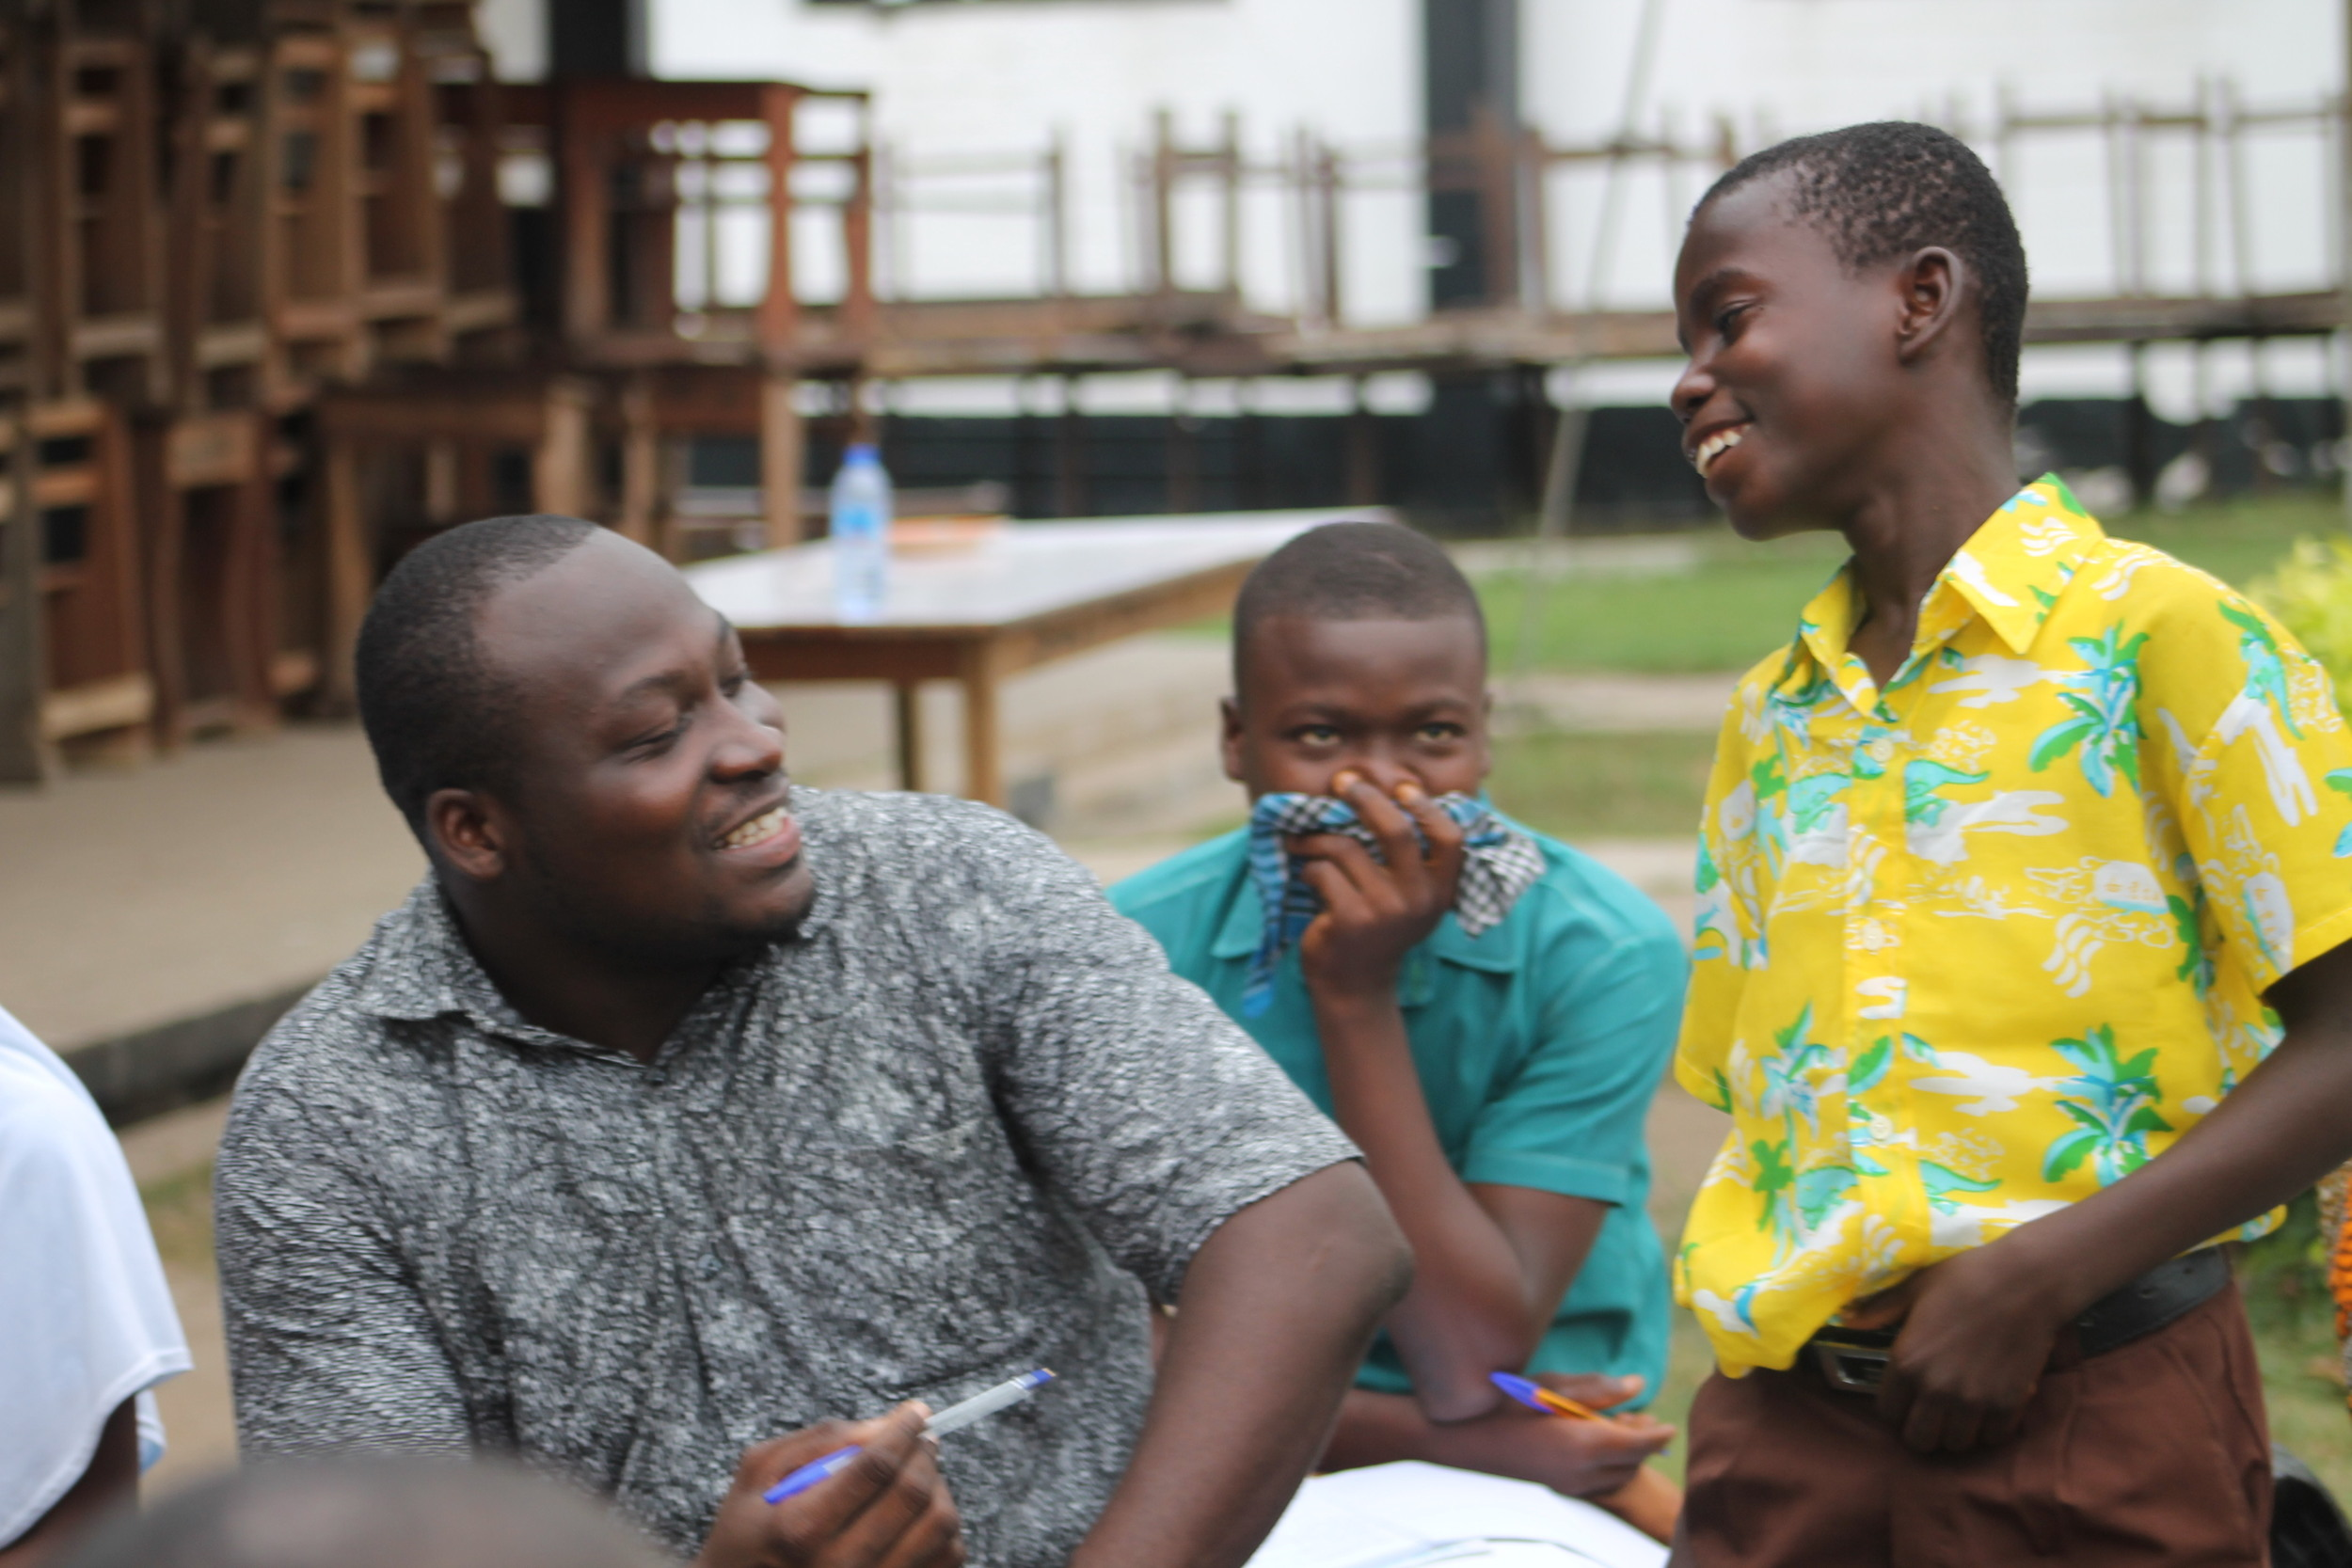 Foster Adzraku, from the Ministry of Gender, shares a laugh with students during one of the interactive sessions.  Photo by Stephanie Gasana